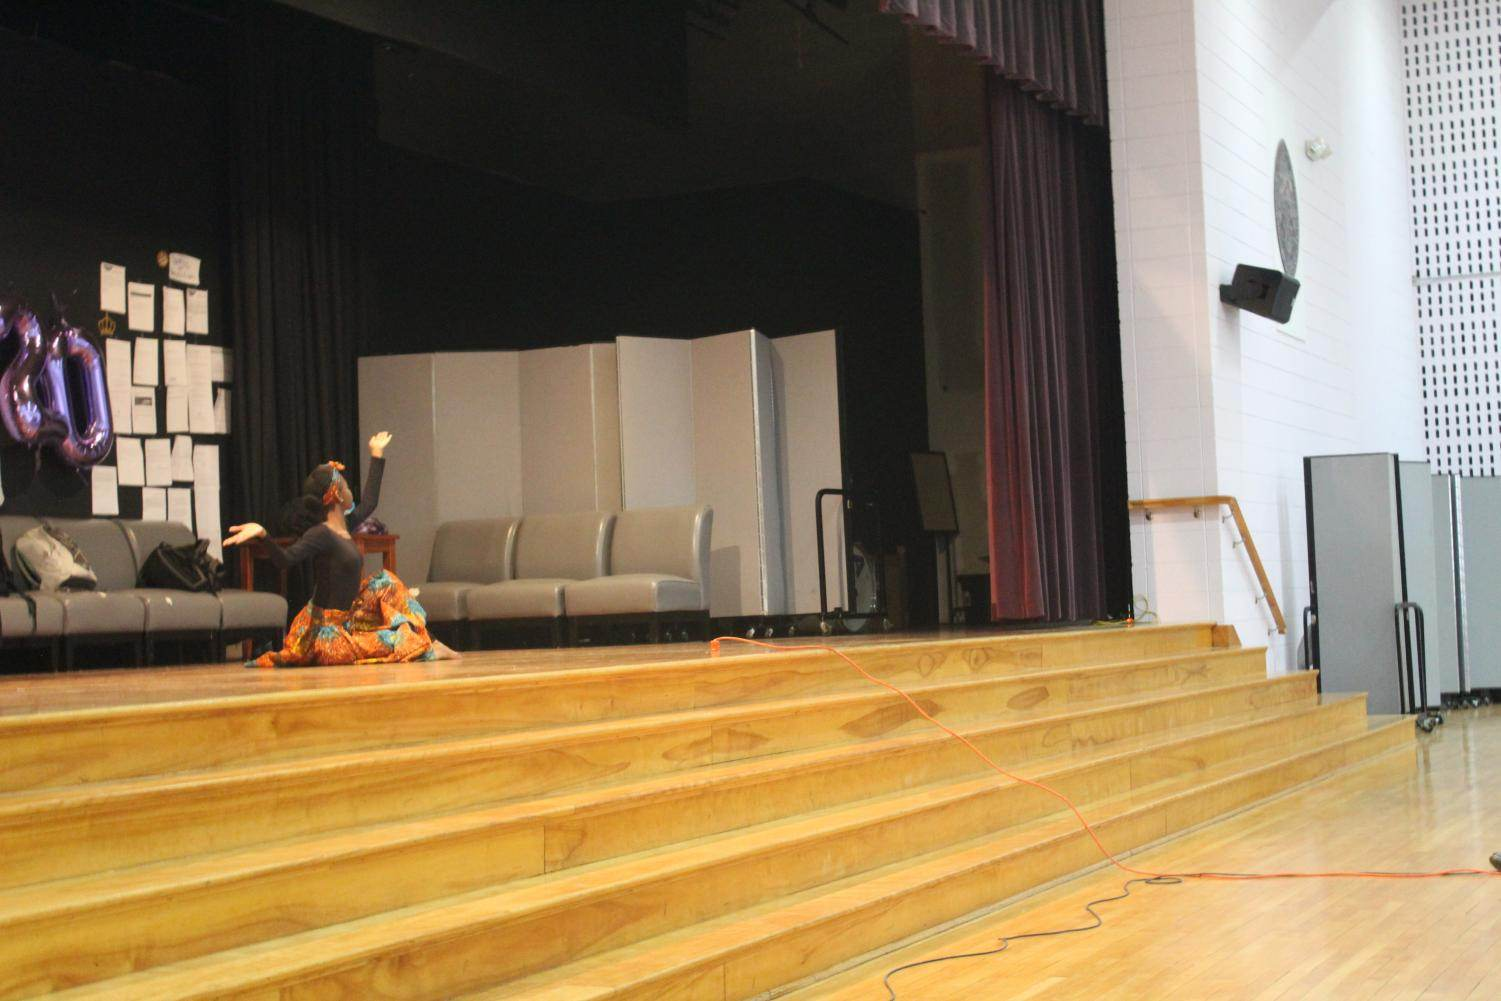 Faith performing a special dance for the Onyx Club assembly.